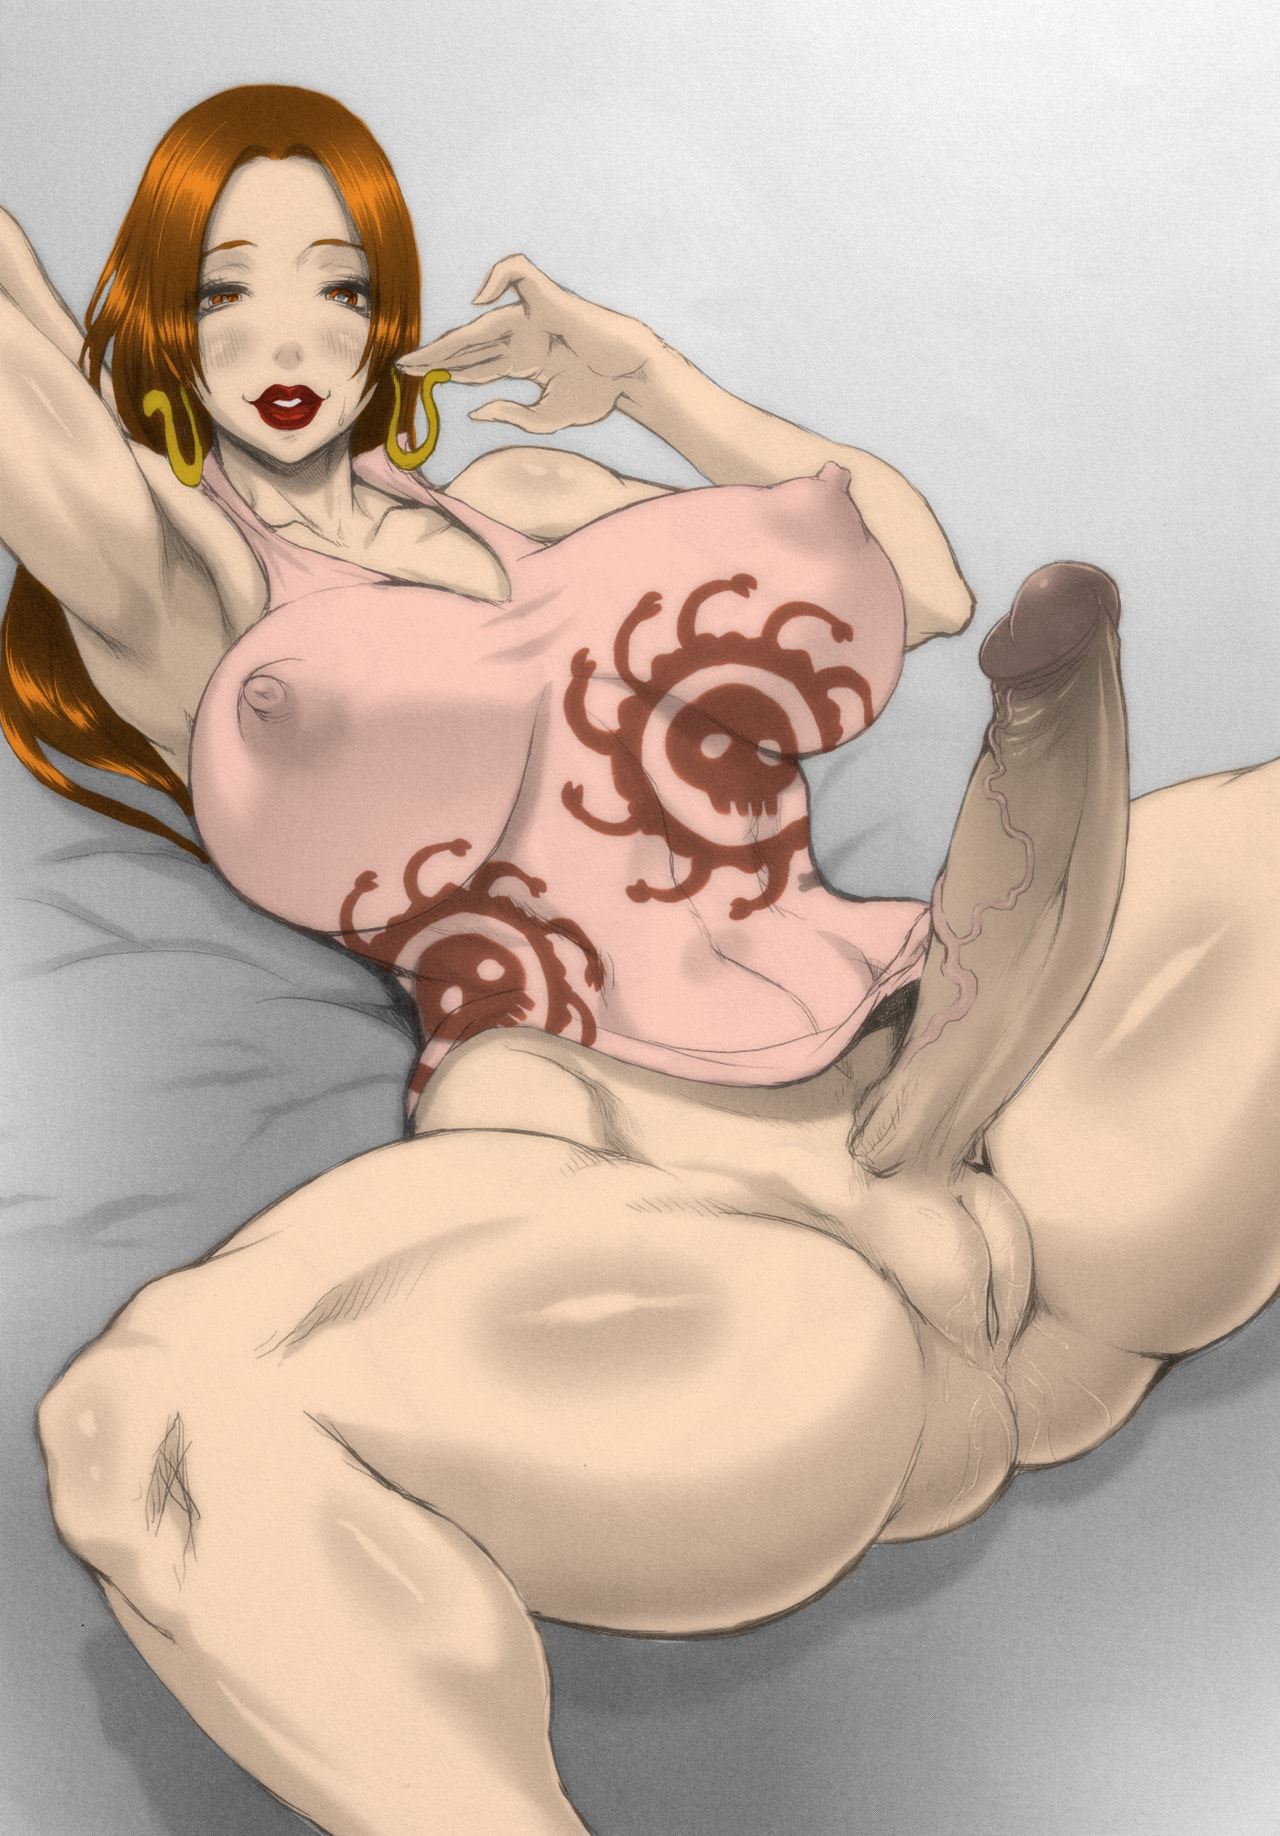 Thick and muscular futa Hancock